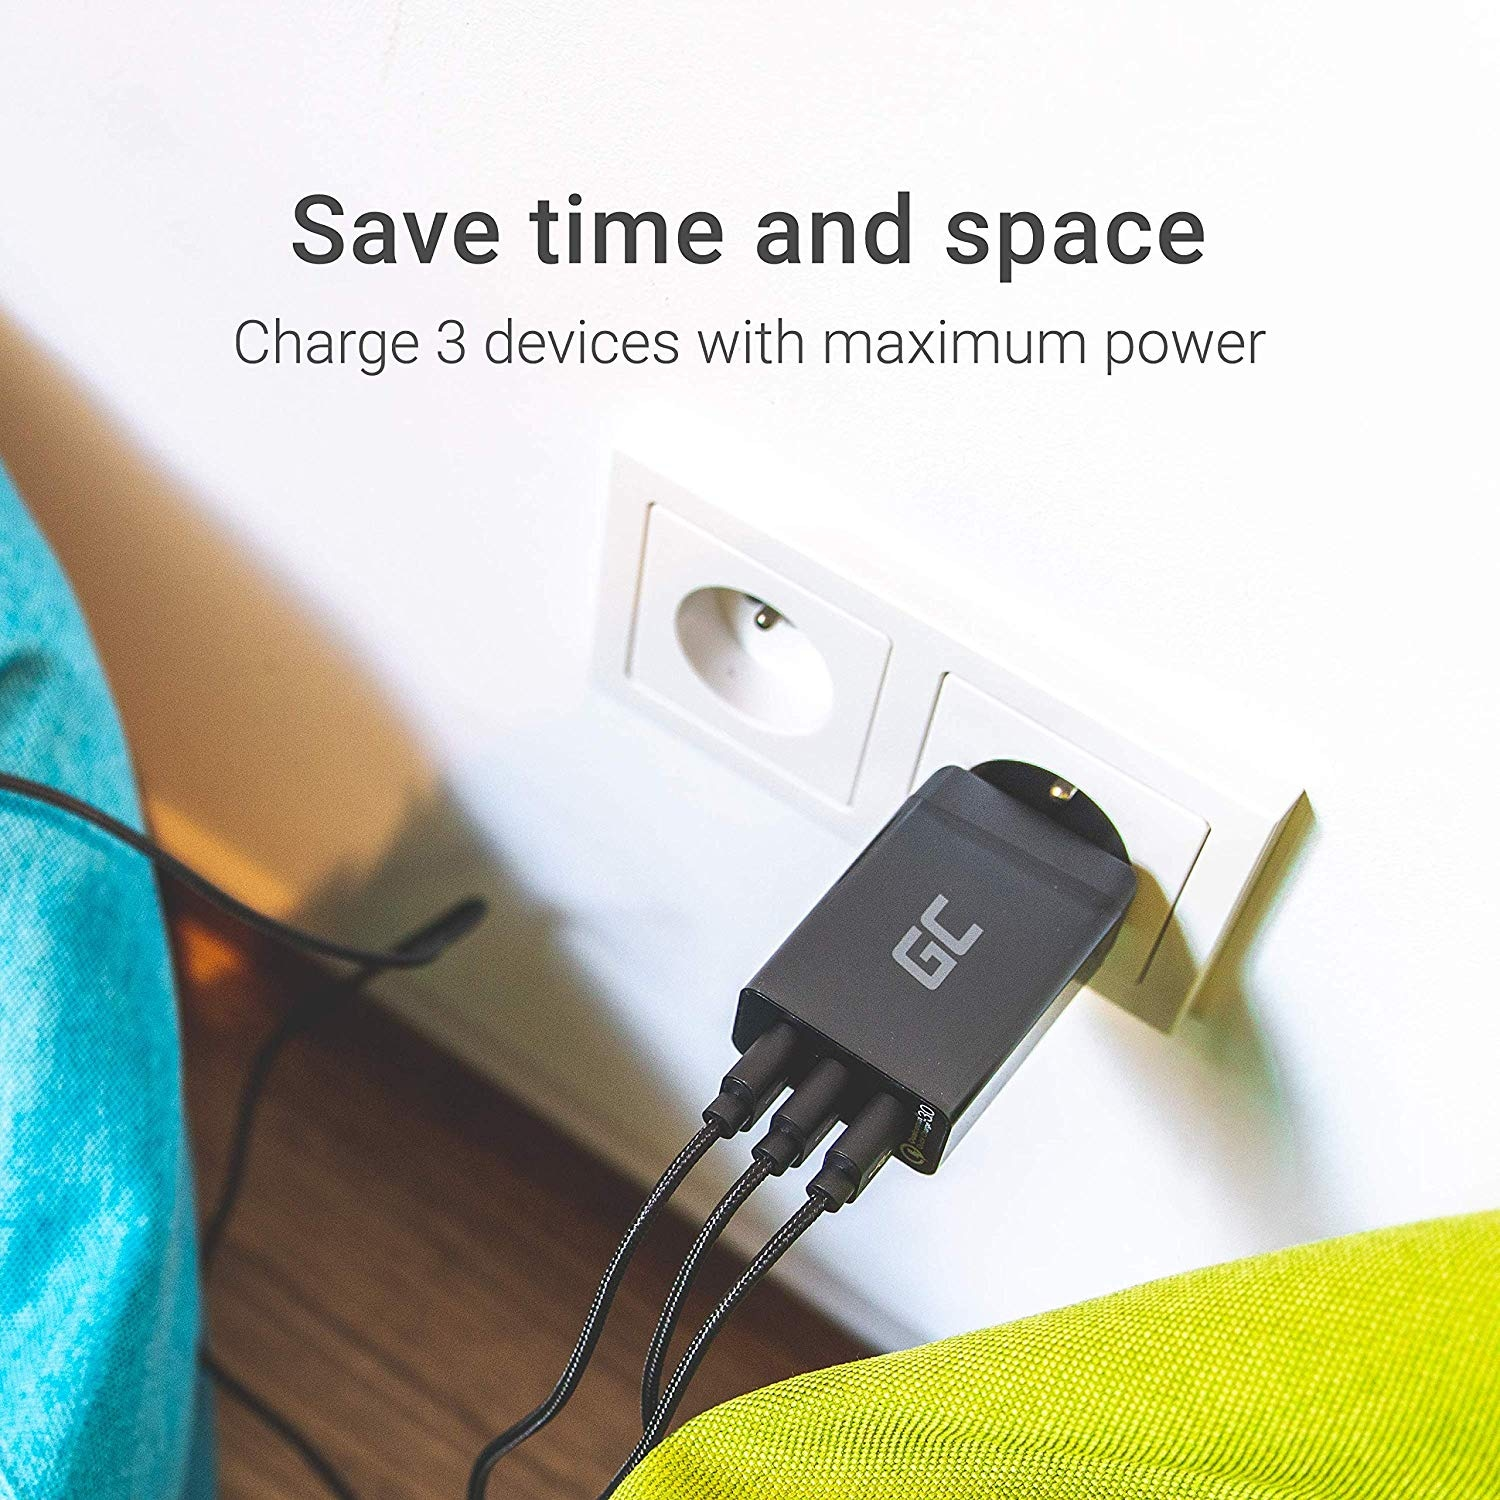 GC® Universal Charger 30W 3-Port USB with QC Quick Charge 3.0 for iPhone iPad Samsung Honor HTC Huawei LG Sony - 6